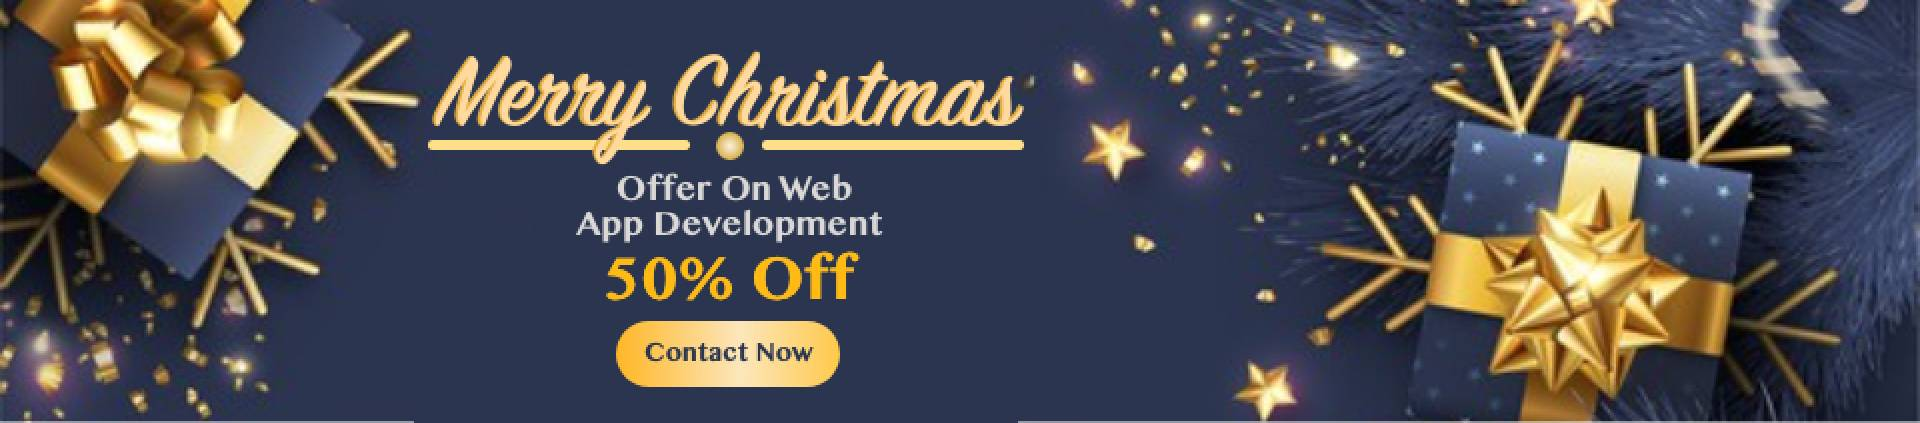 Which is the best website development compnay near me?  If your are looking website development company in kolkata then contact Webapps